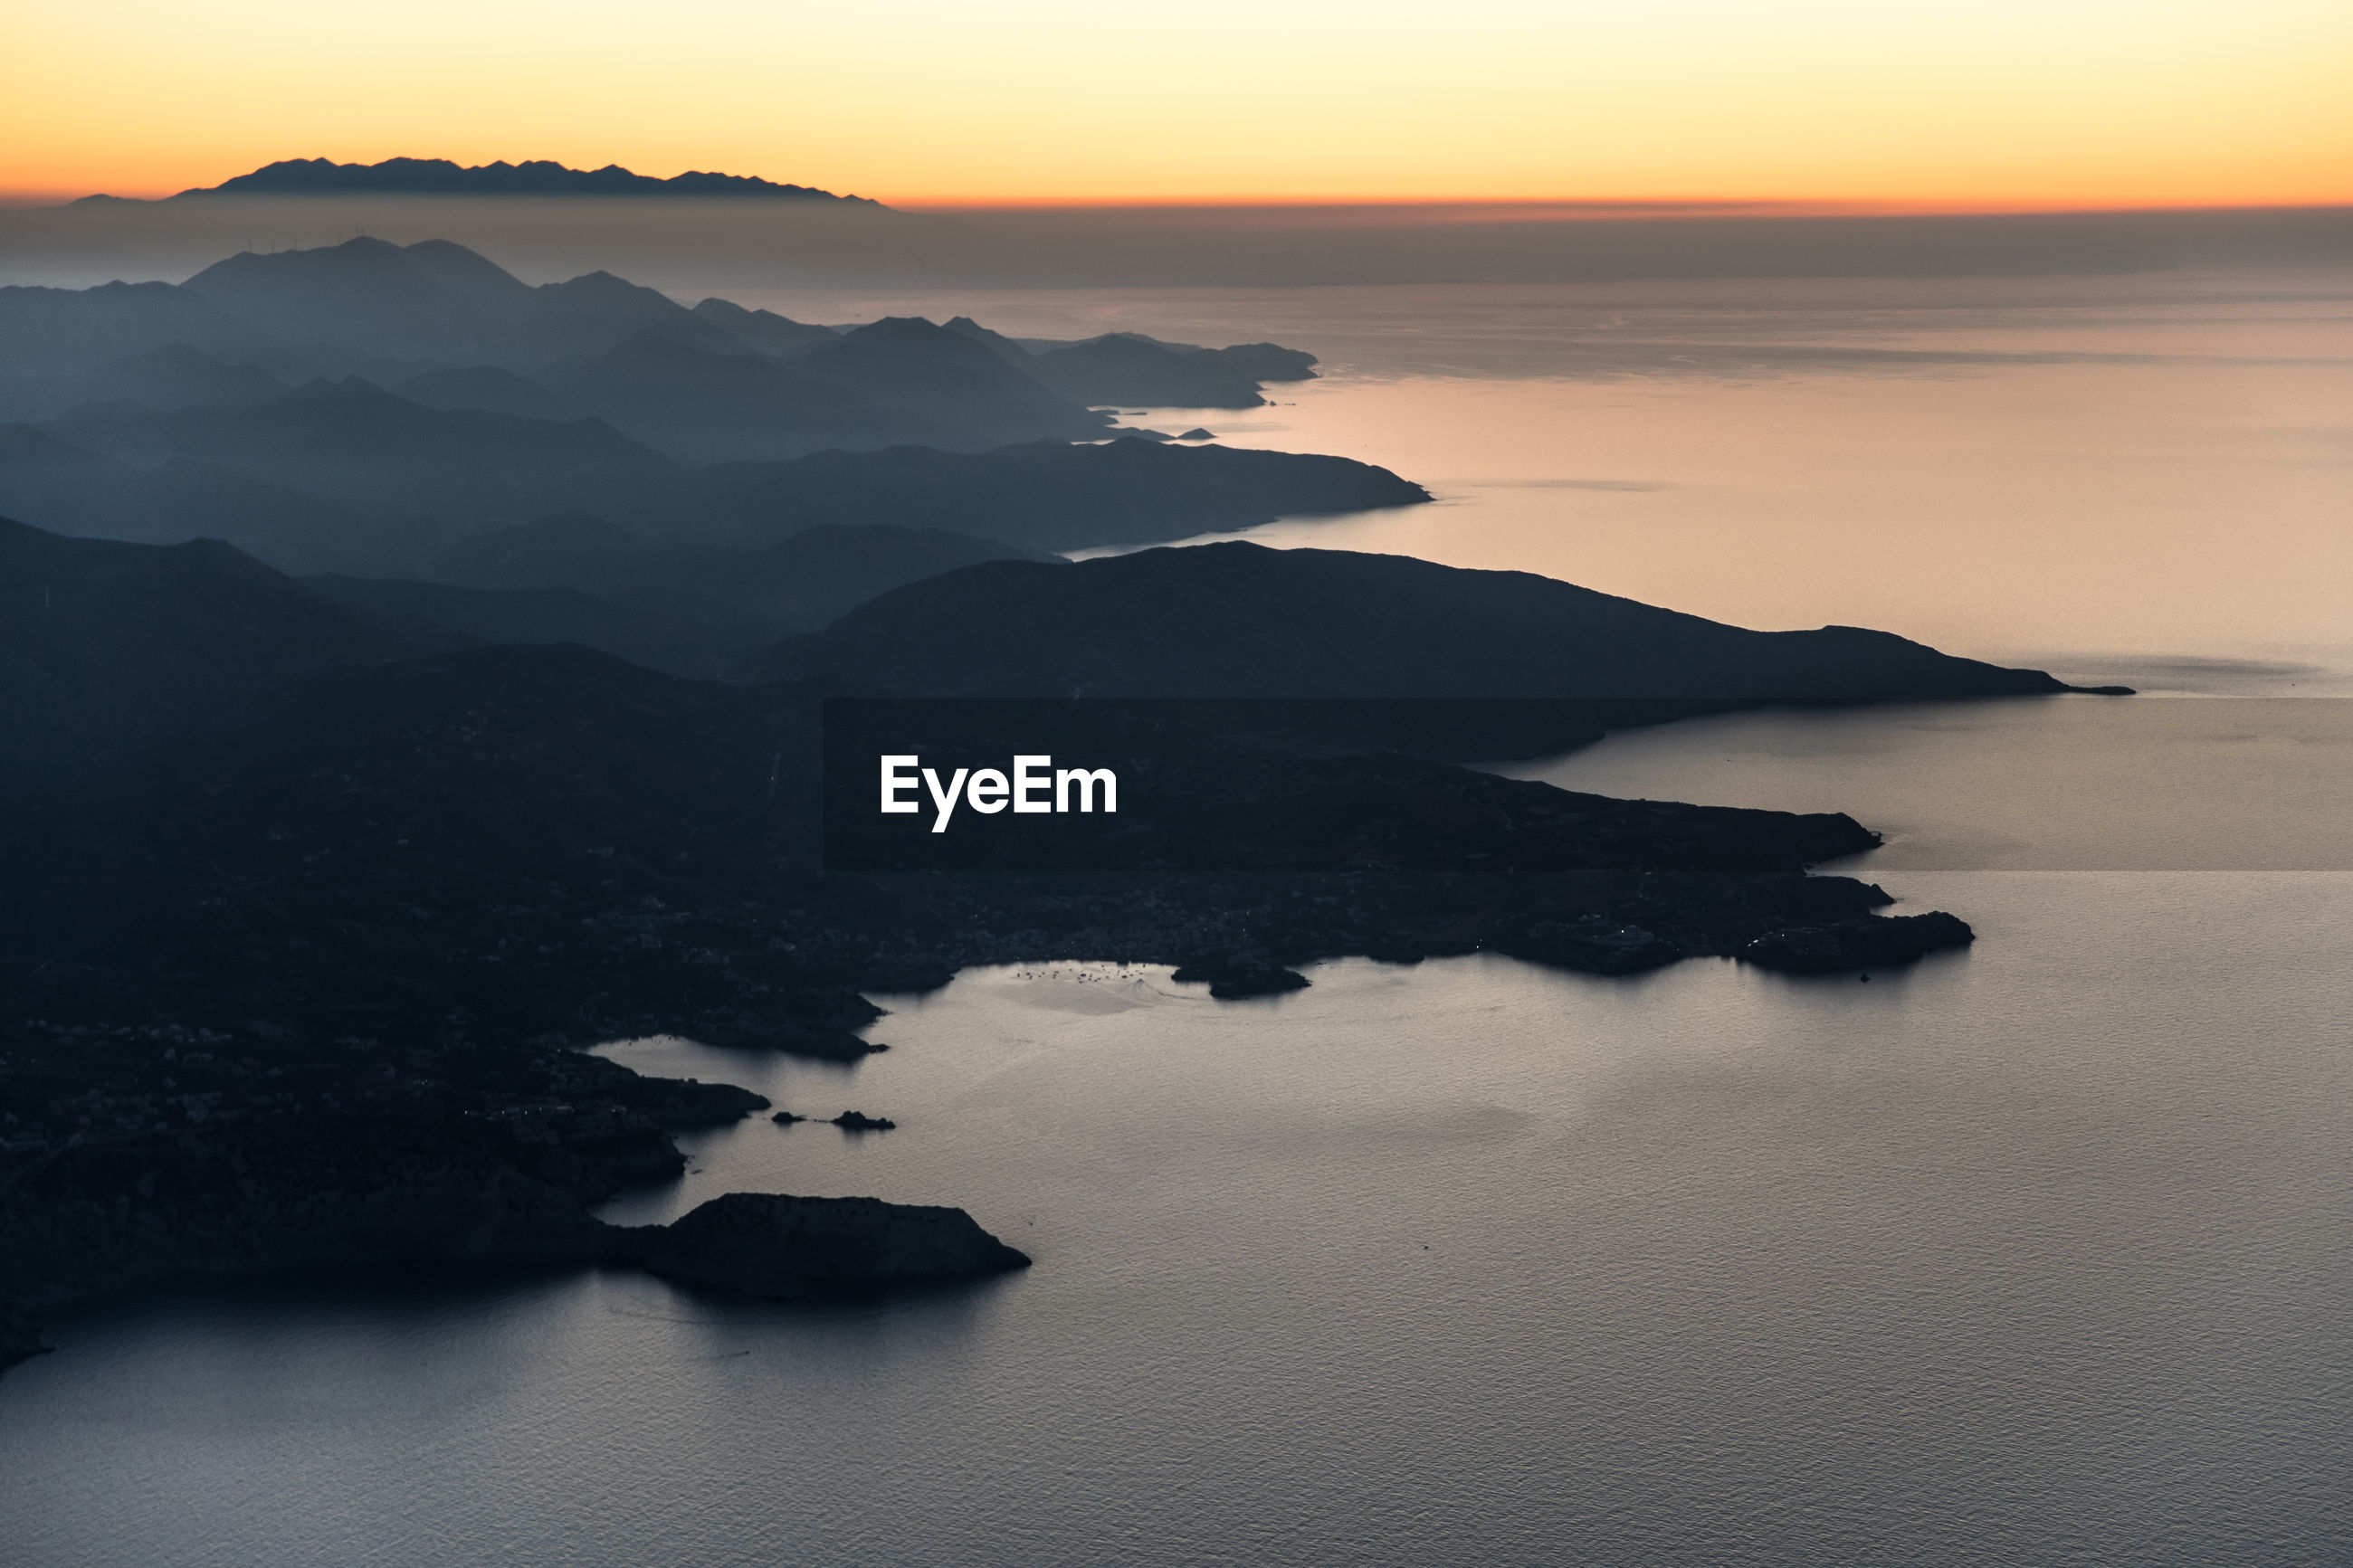 SCENIC VIEW OF SEA BY SILHOUETTE MOUNTAIN AGAINST SKY DURING SUNSET